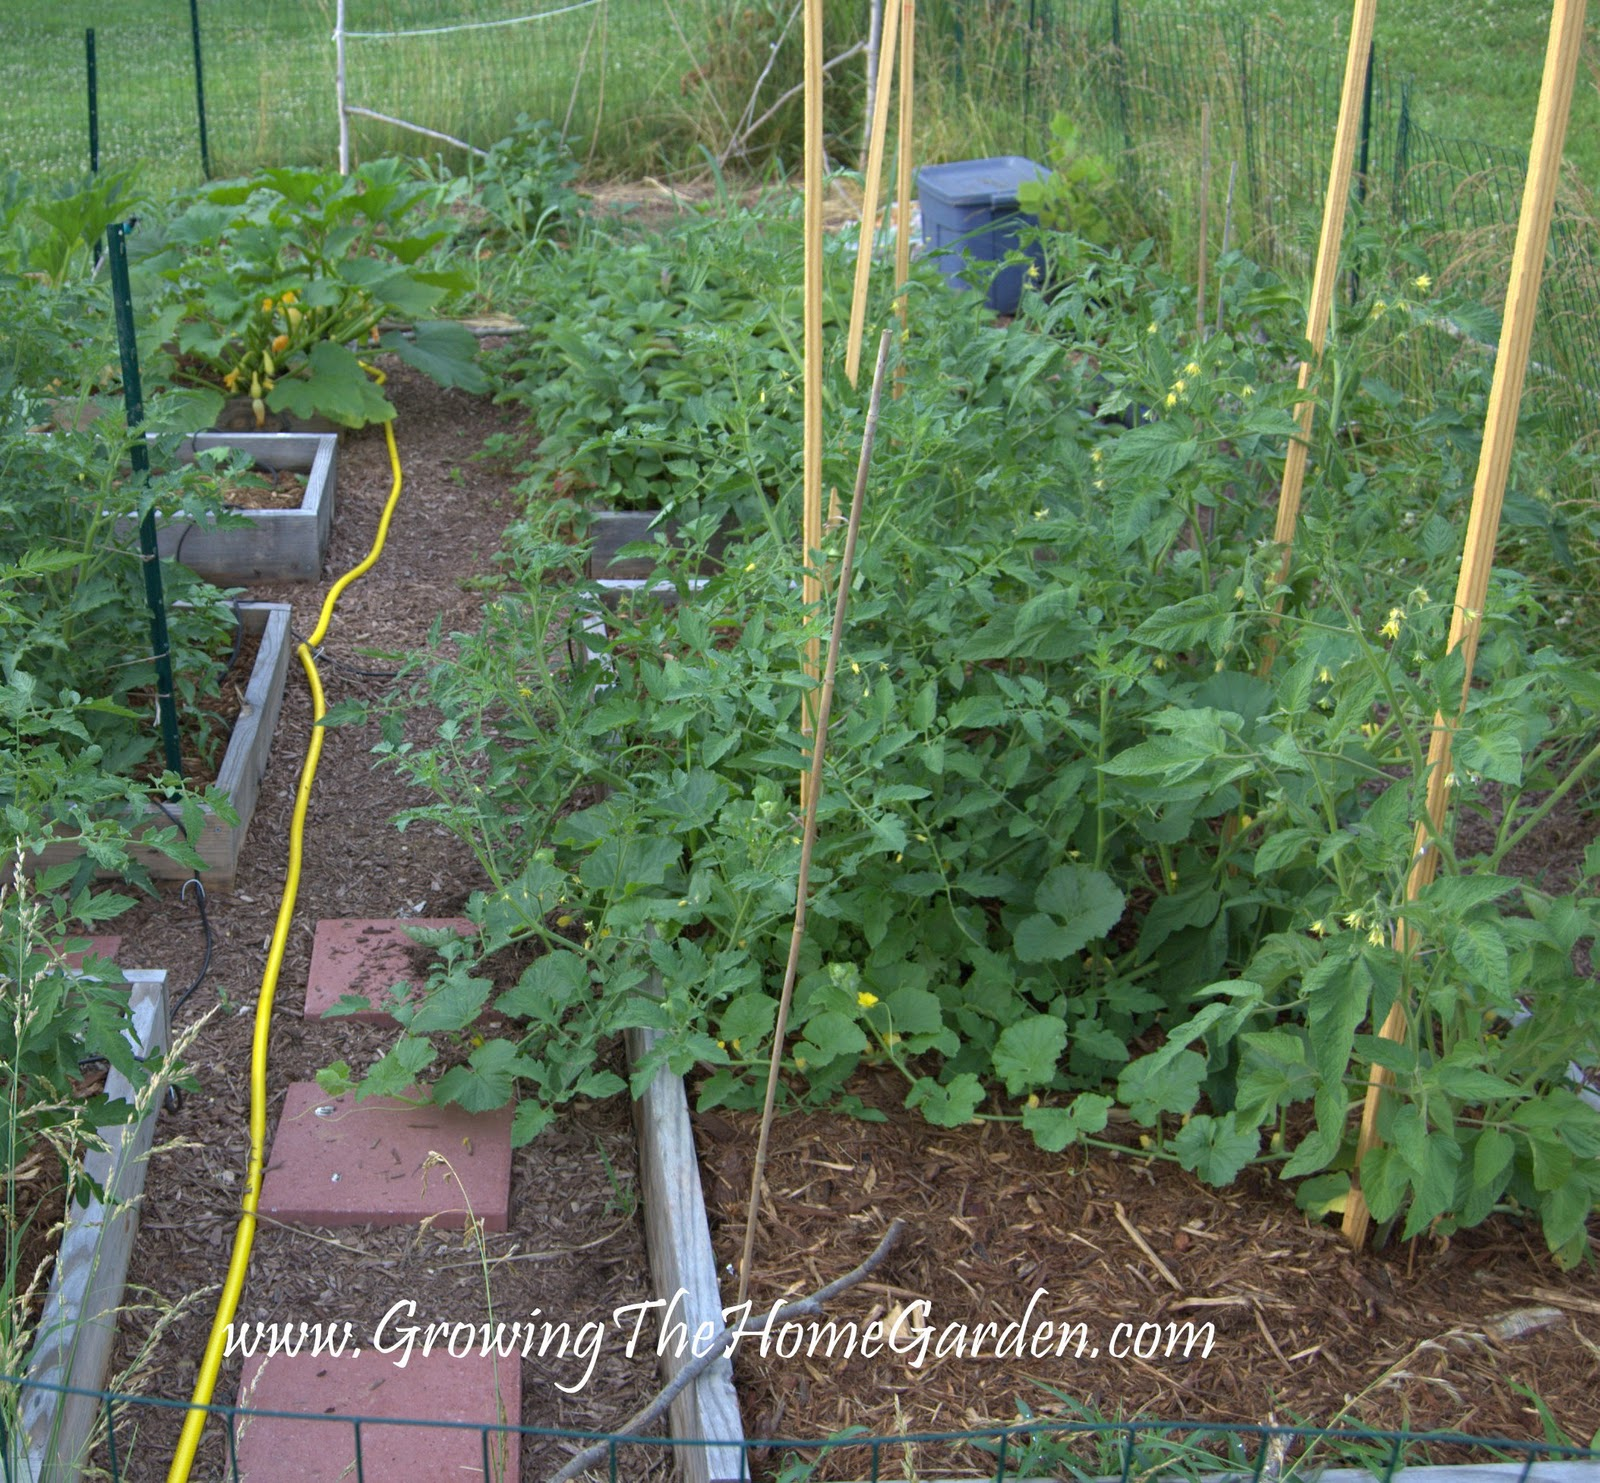 Designing A Vegetable Garden With Raised Beds 700_raised garden bed rabbit fence jpeg 11 Tips To Consider When Designing A Raised Bed Vegetable Garden Layout